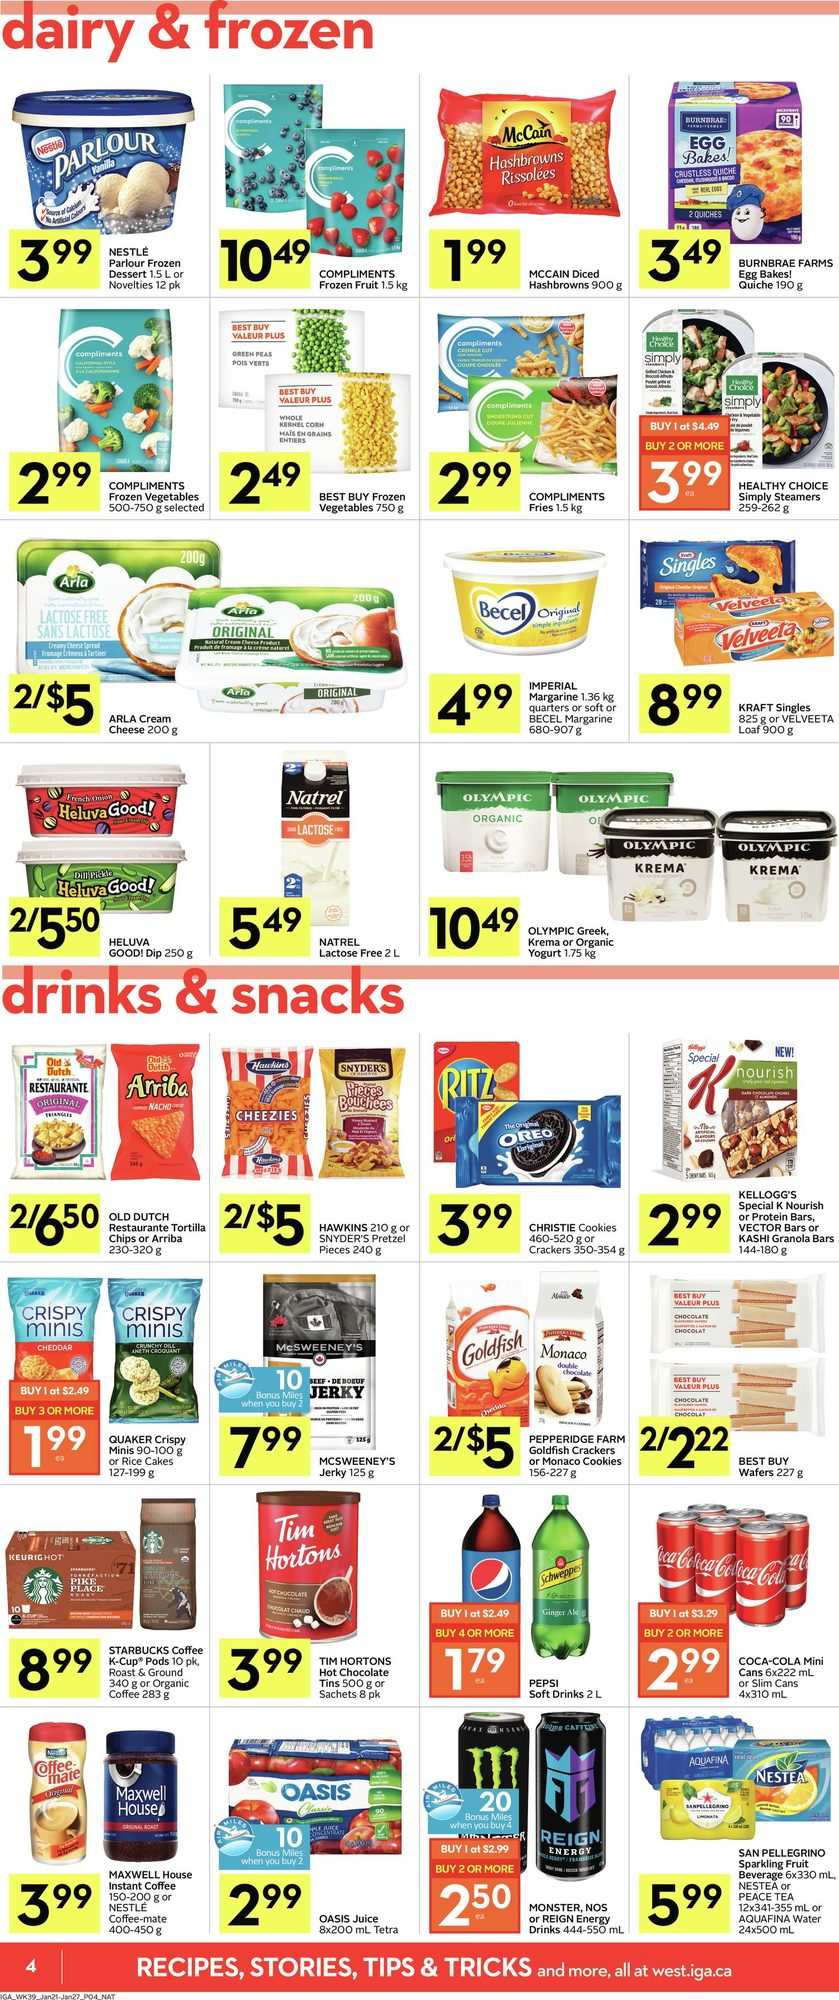 IGA - Weekly Flyer Specials - Page 4